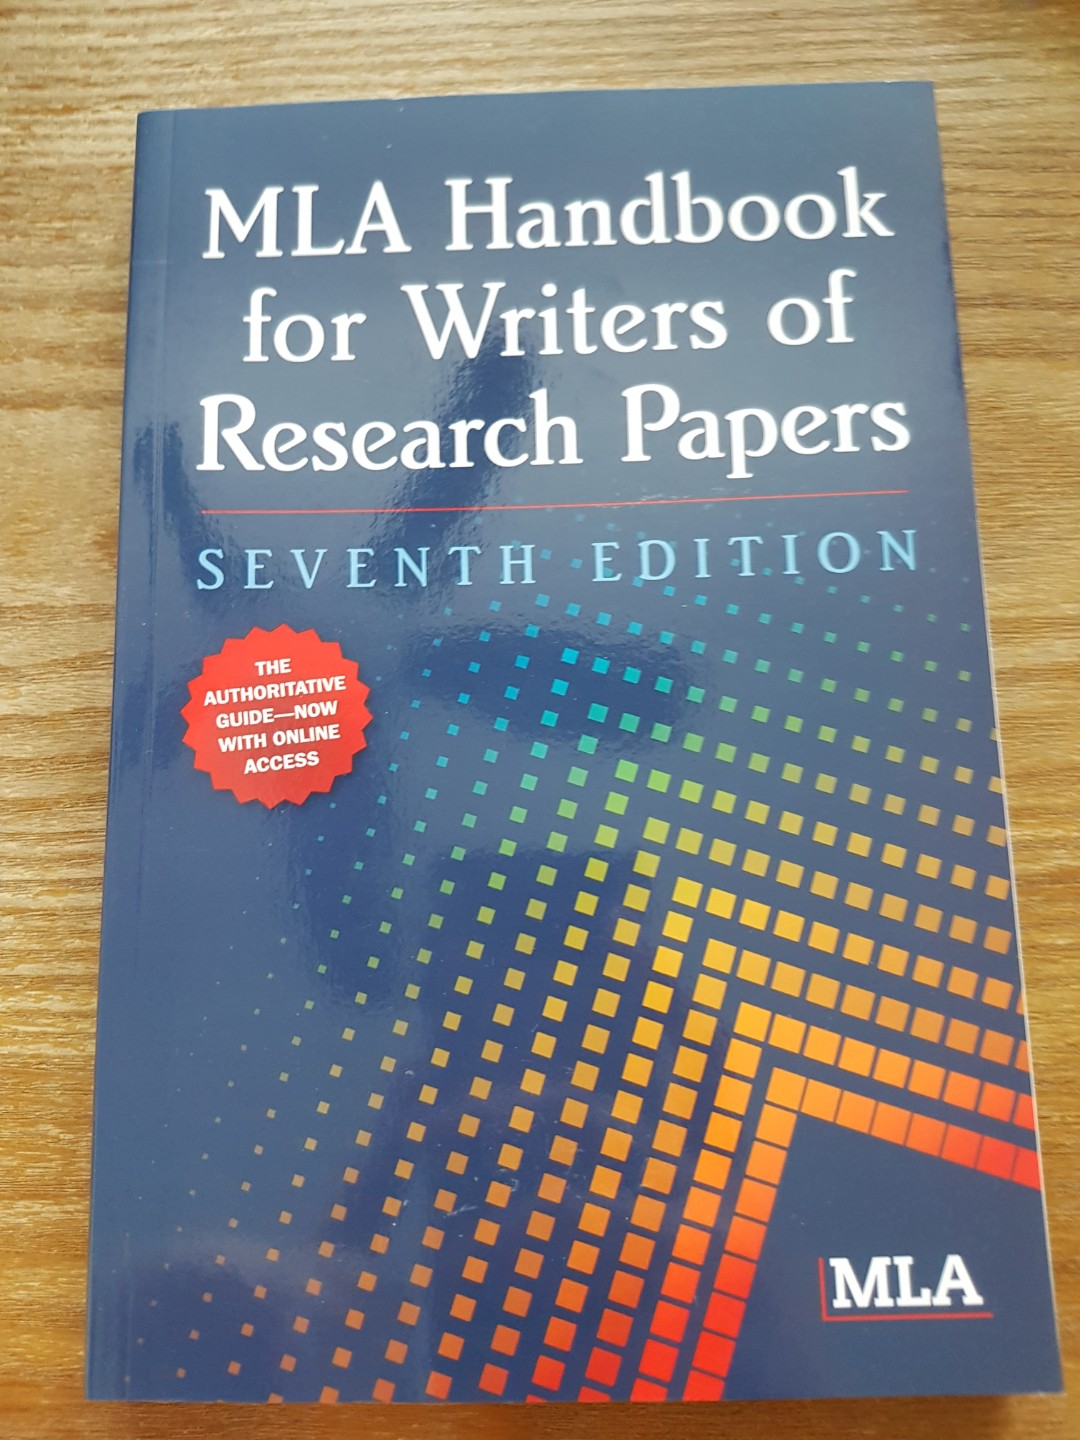 003 Bn Mla Handbook For Writers Of Research Papers 7th 1526886966 Db26cb23 Paper Fearsome Edition Pdf Free 2009 Summary Full